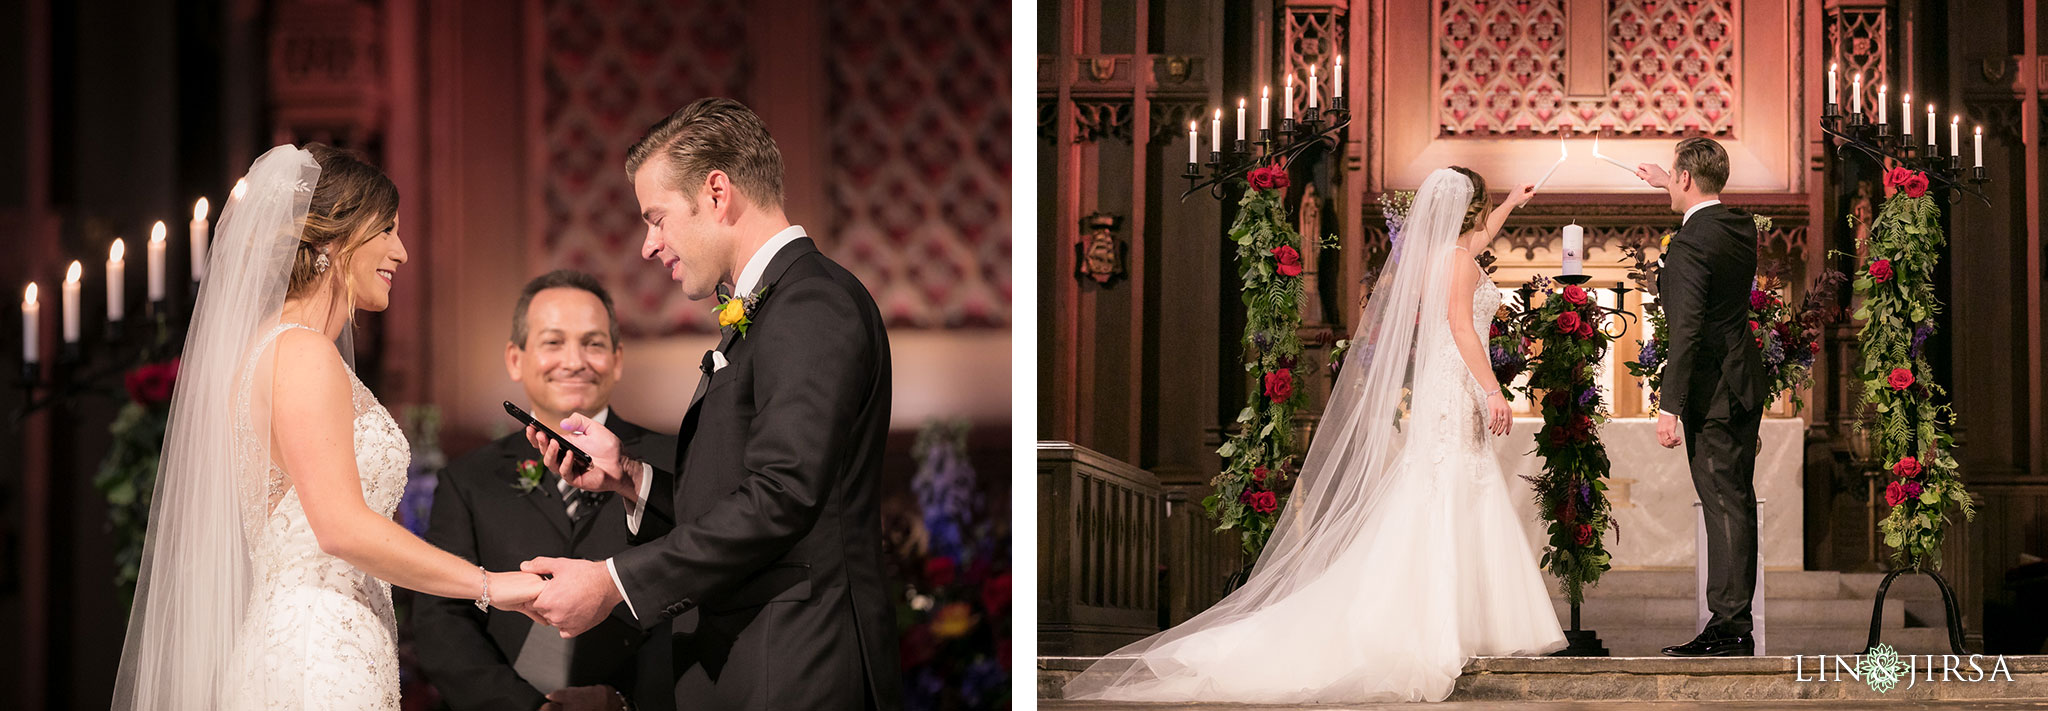 22 first congregational church los angeles wedding photography